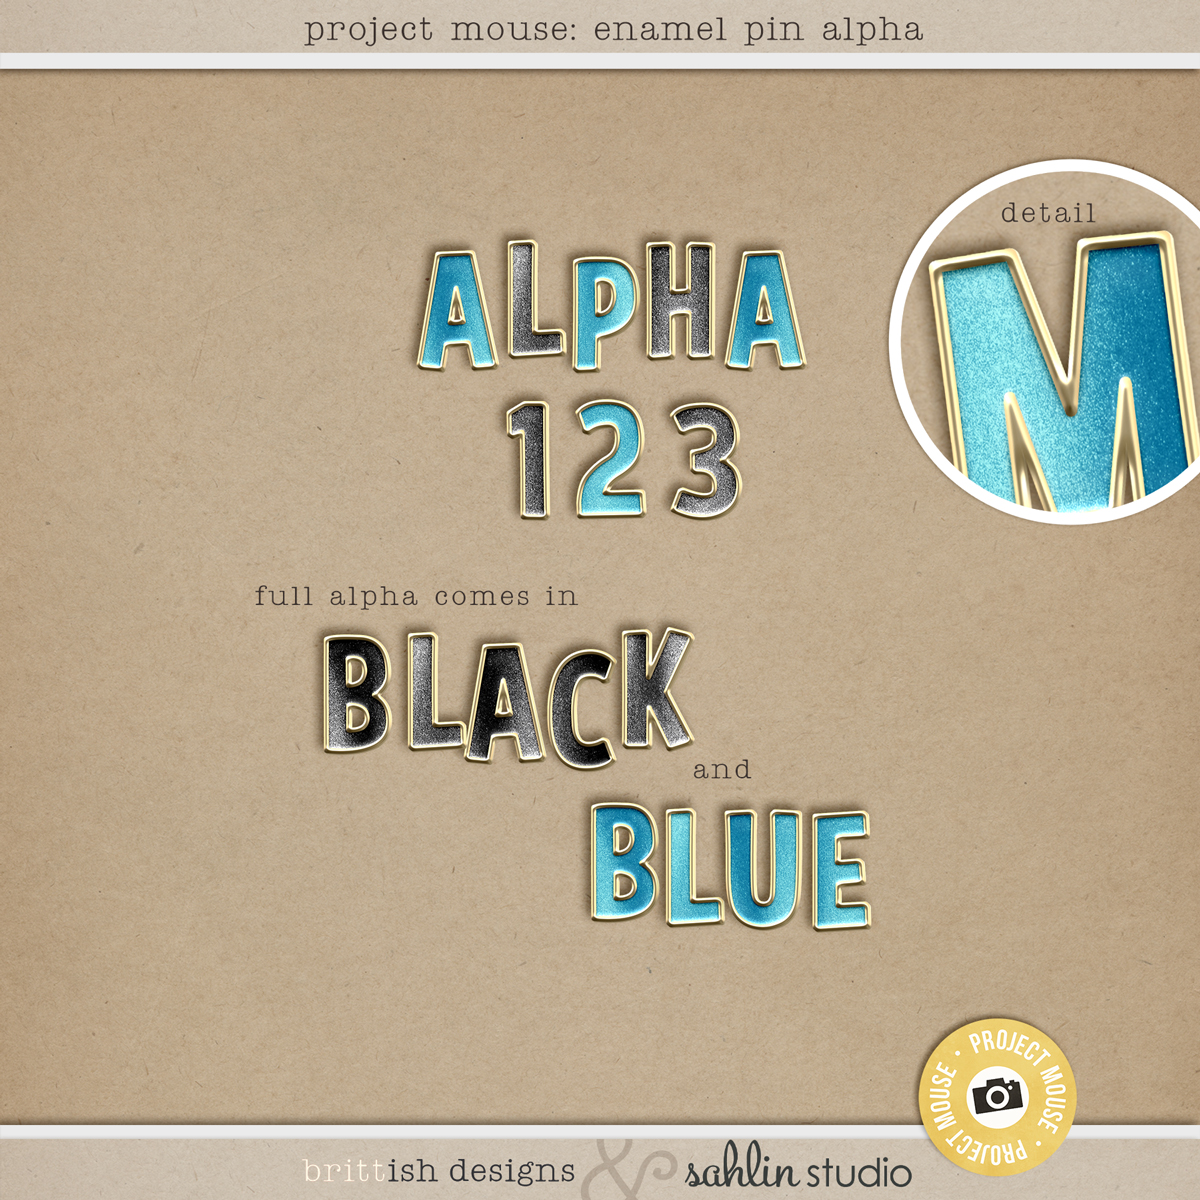 Project Mouse: Enamel Pin Alpha | by Britt-ish Designs and Sahlin Studio - A beautiful gold-rimmed alpha, reminiscent of the enamel trading pins that we all seem to collect. Perfect for your Disney or Disneyland digital scrapbooking layouts.